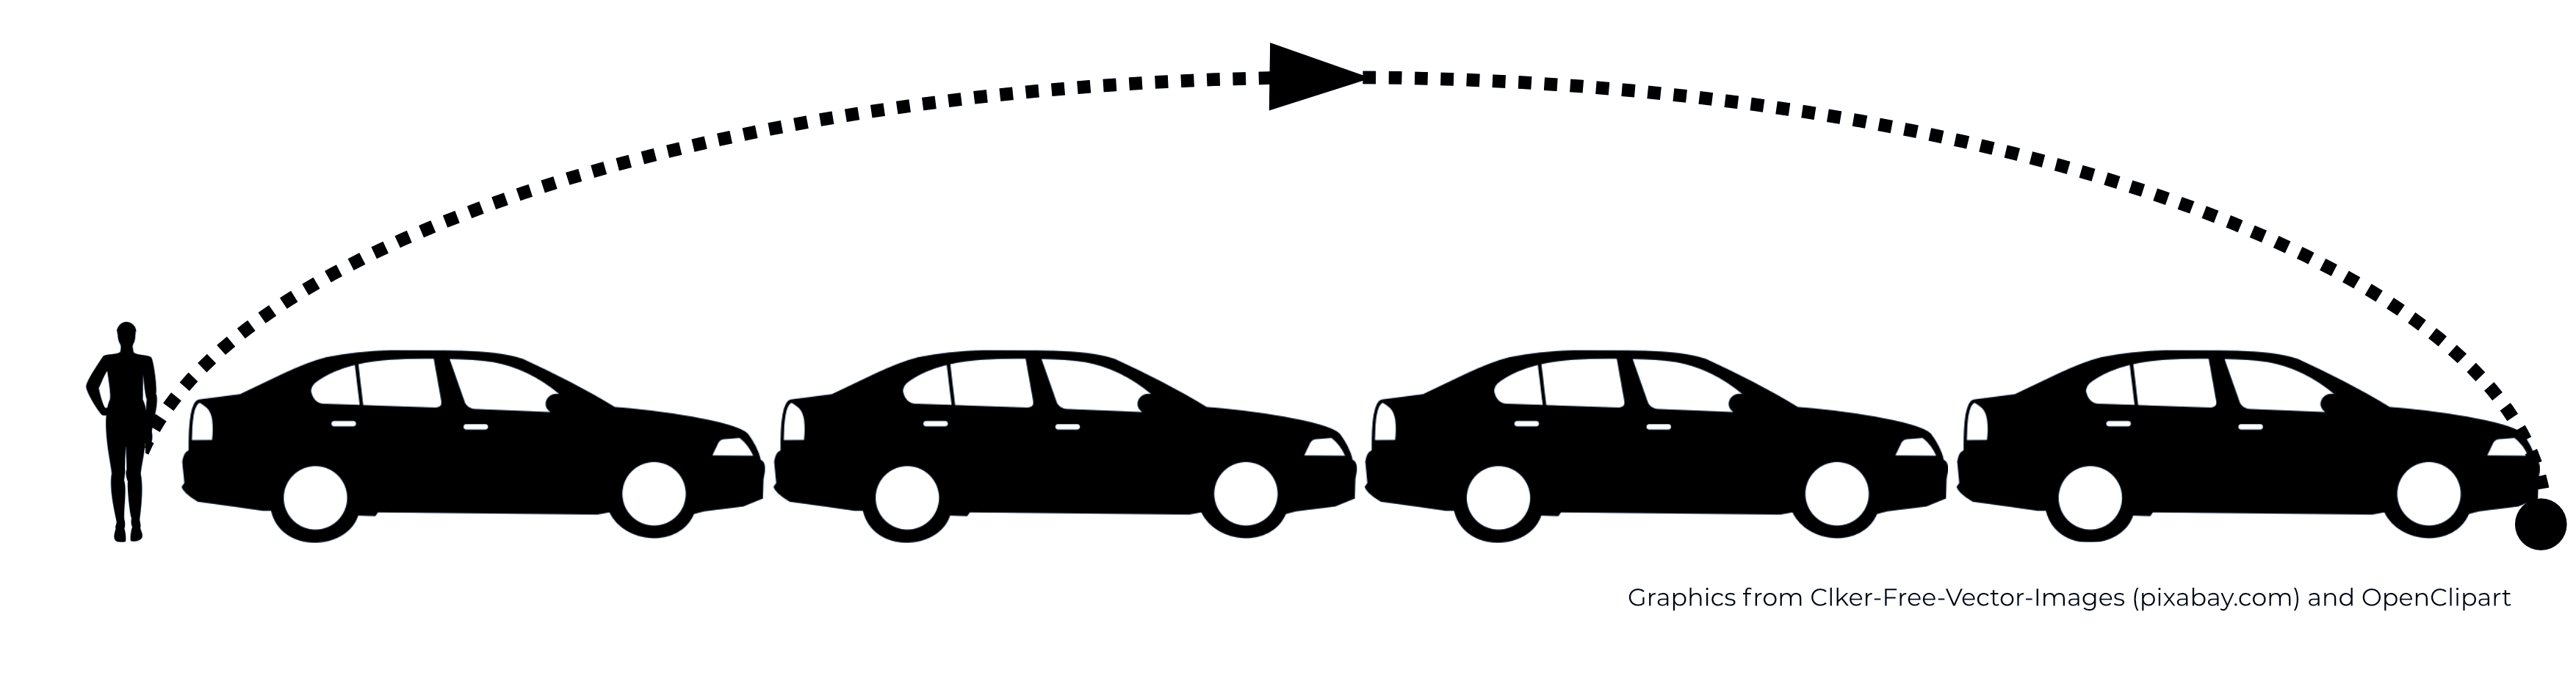 Human leaping four cars graphic